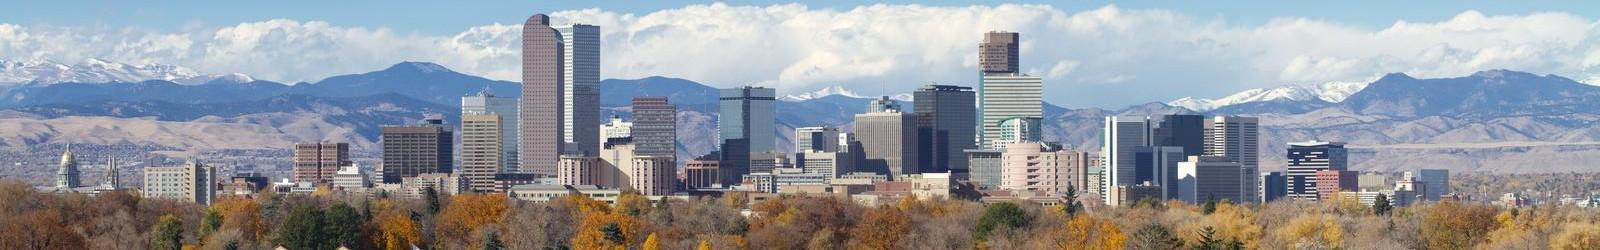 Addictions or Substance Abuse therapists in Denver, Colorado